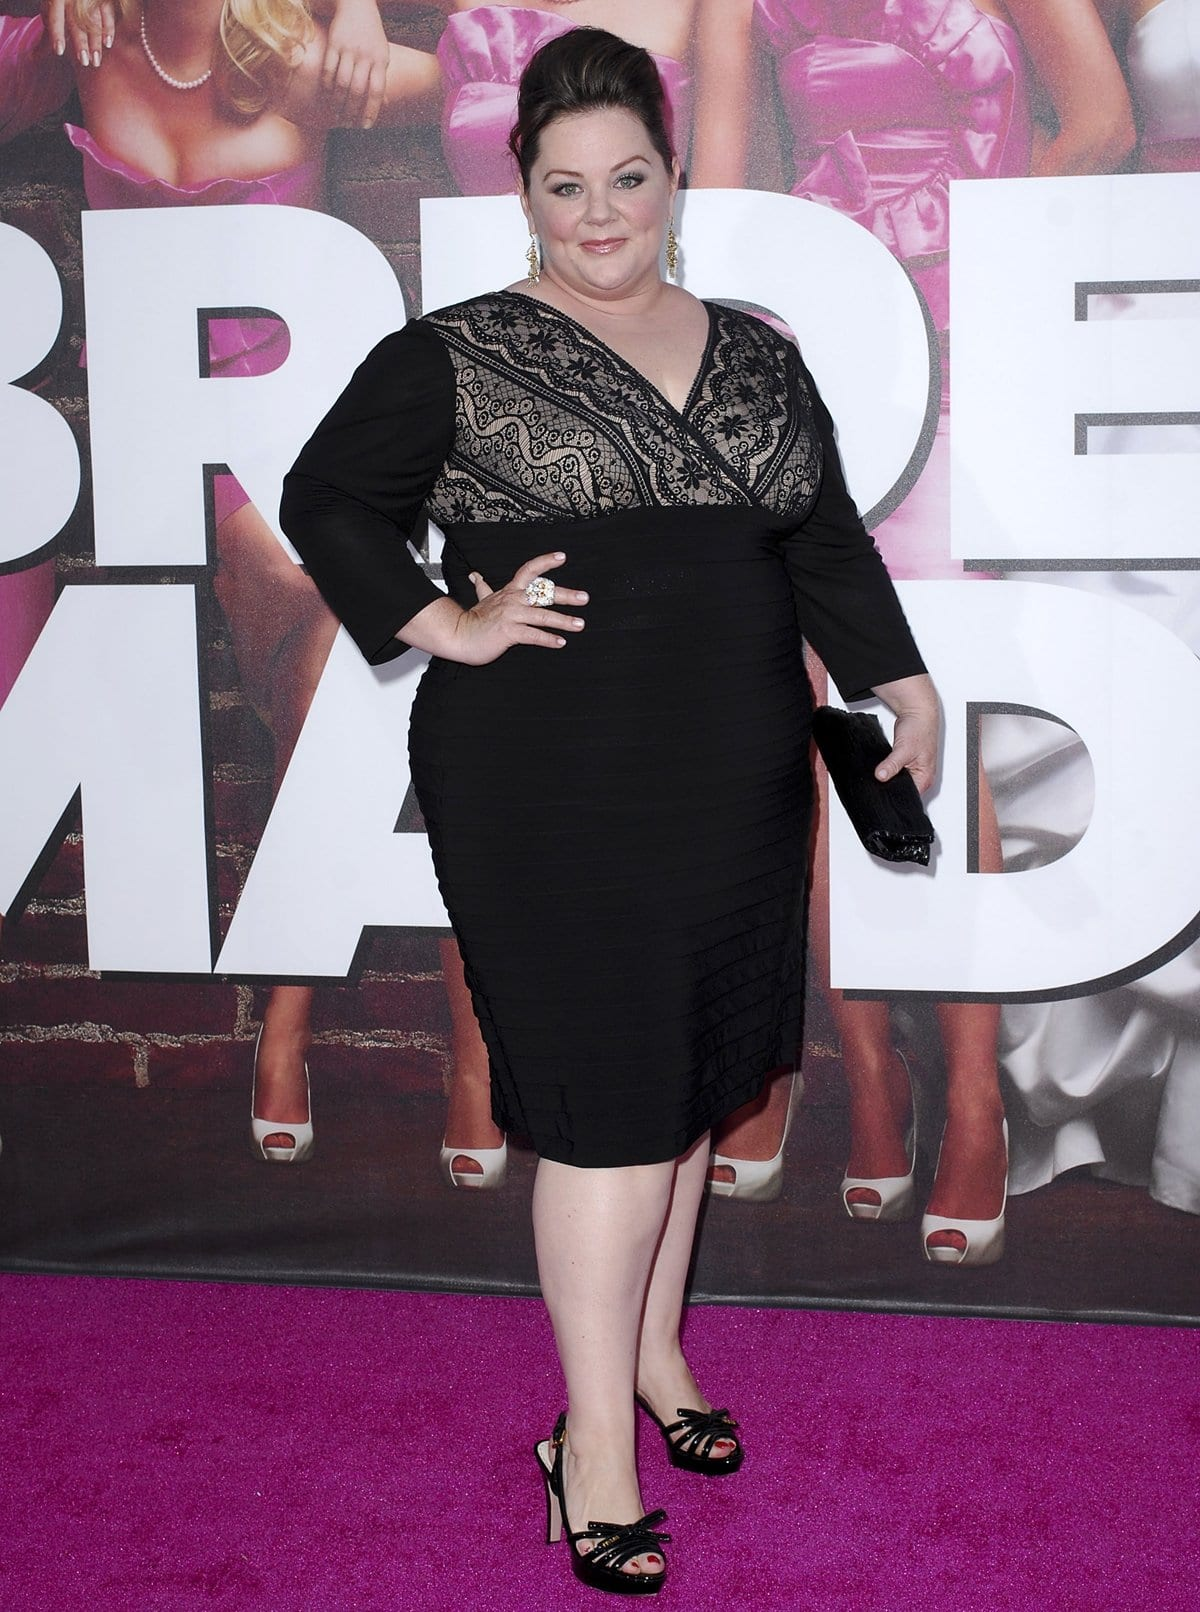 Melissa McCarthy was repeatedly advised to lose weight if she ever wanted to find success in Hollywood